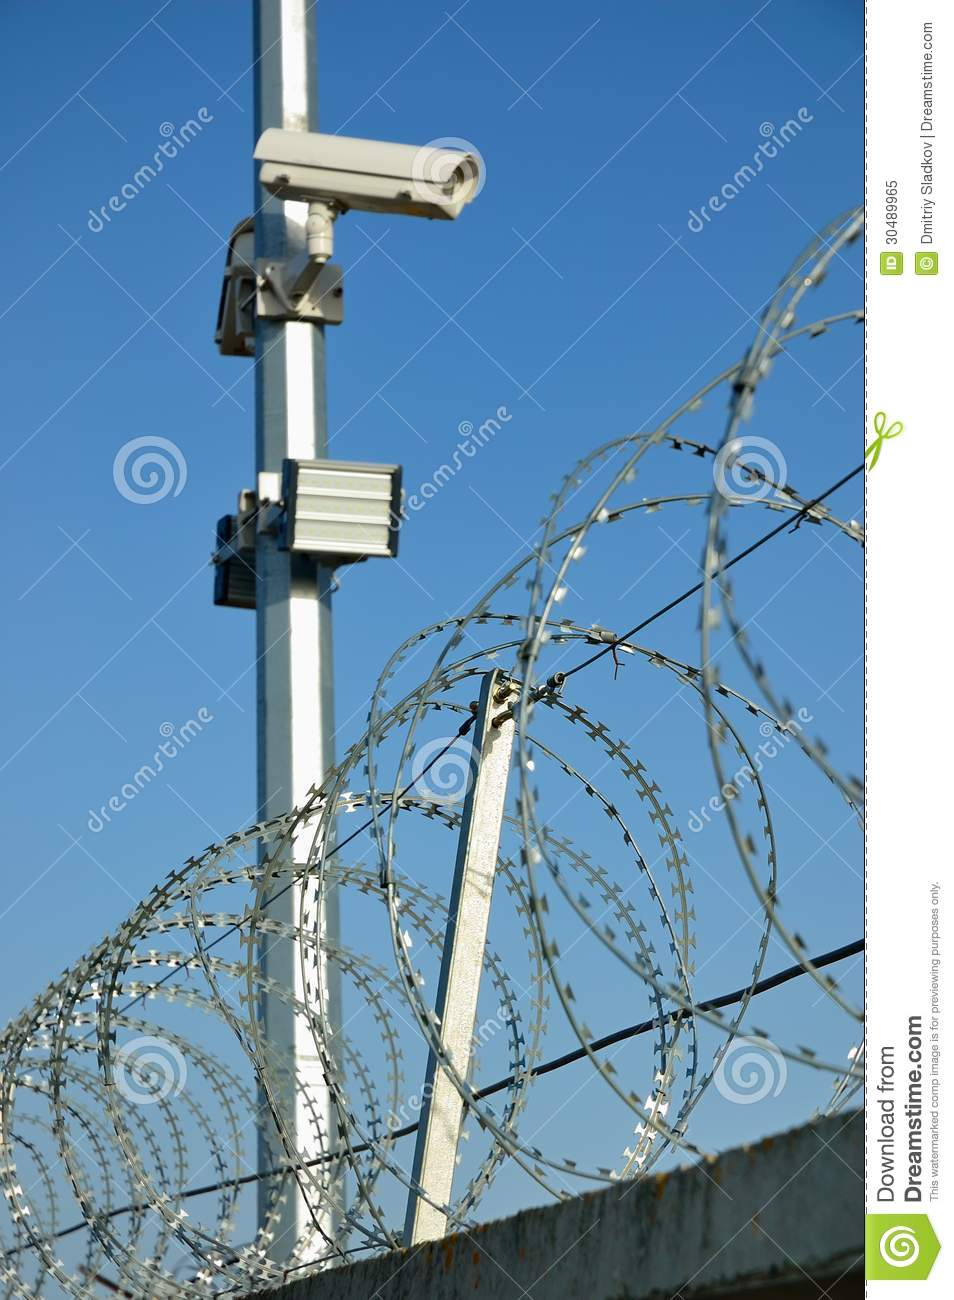 Razor Wire Prices Data Schema Doublelightswitchdiagramwiringdoublelightswitchdiagramwiring Security Cameras Royalty Free Stock Photo Image 30489965 Home Depot Barbed